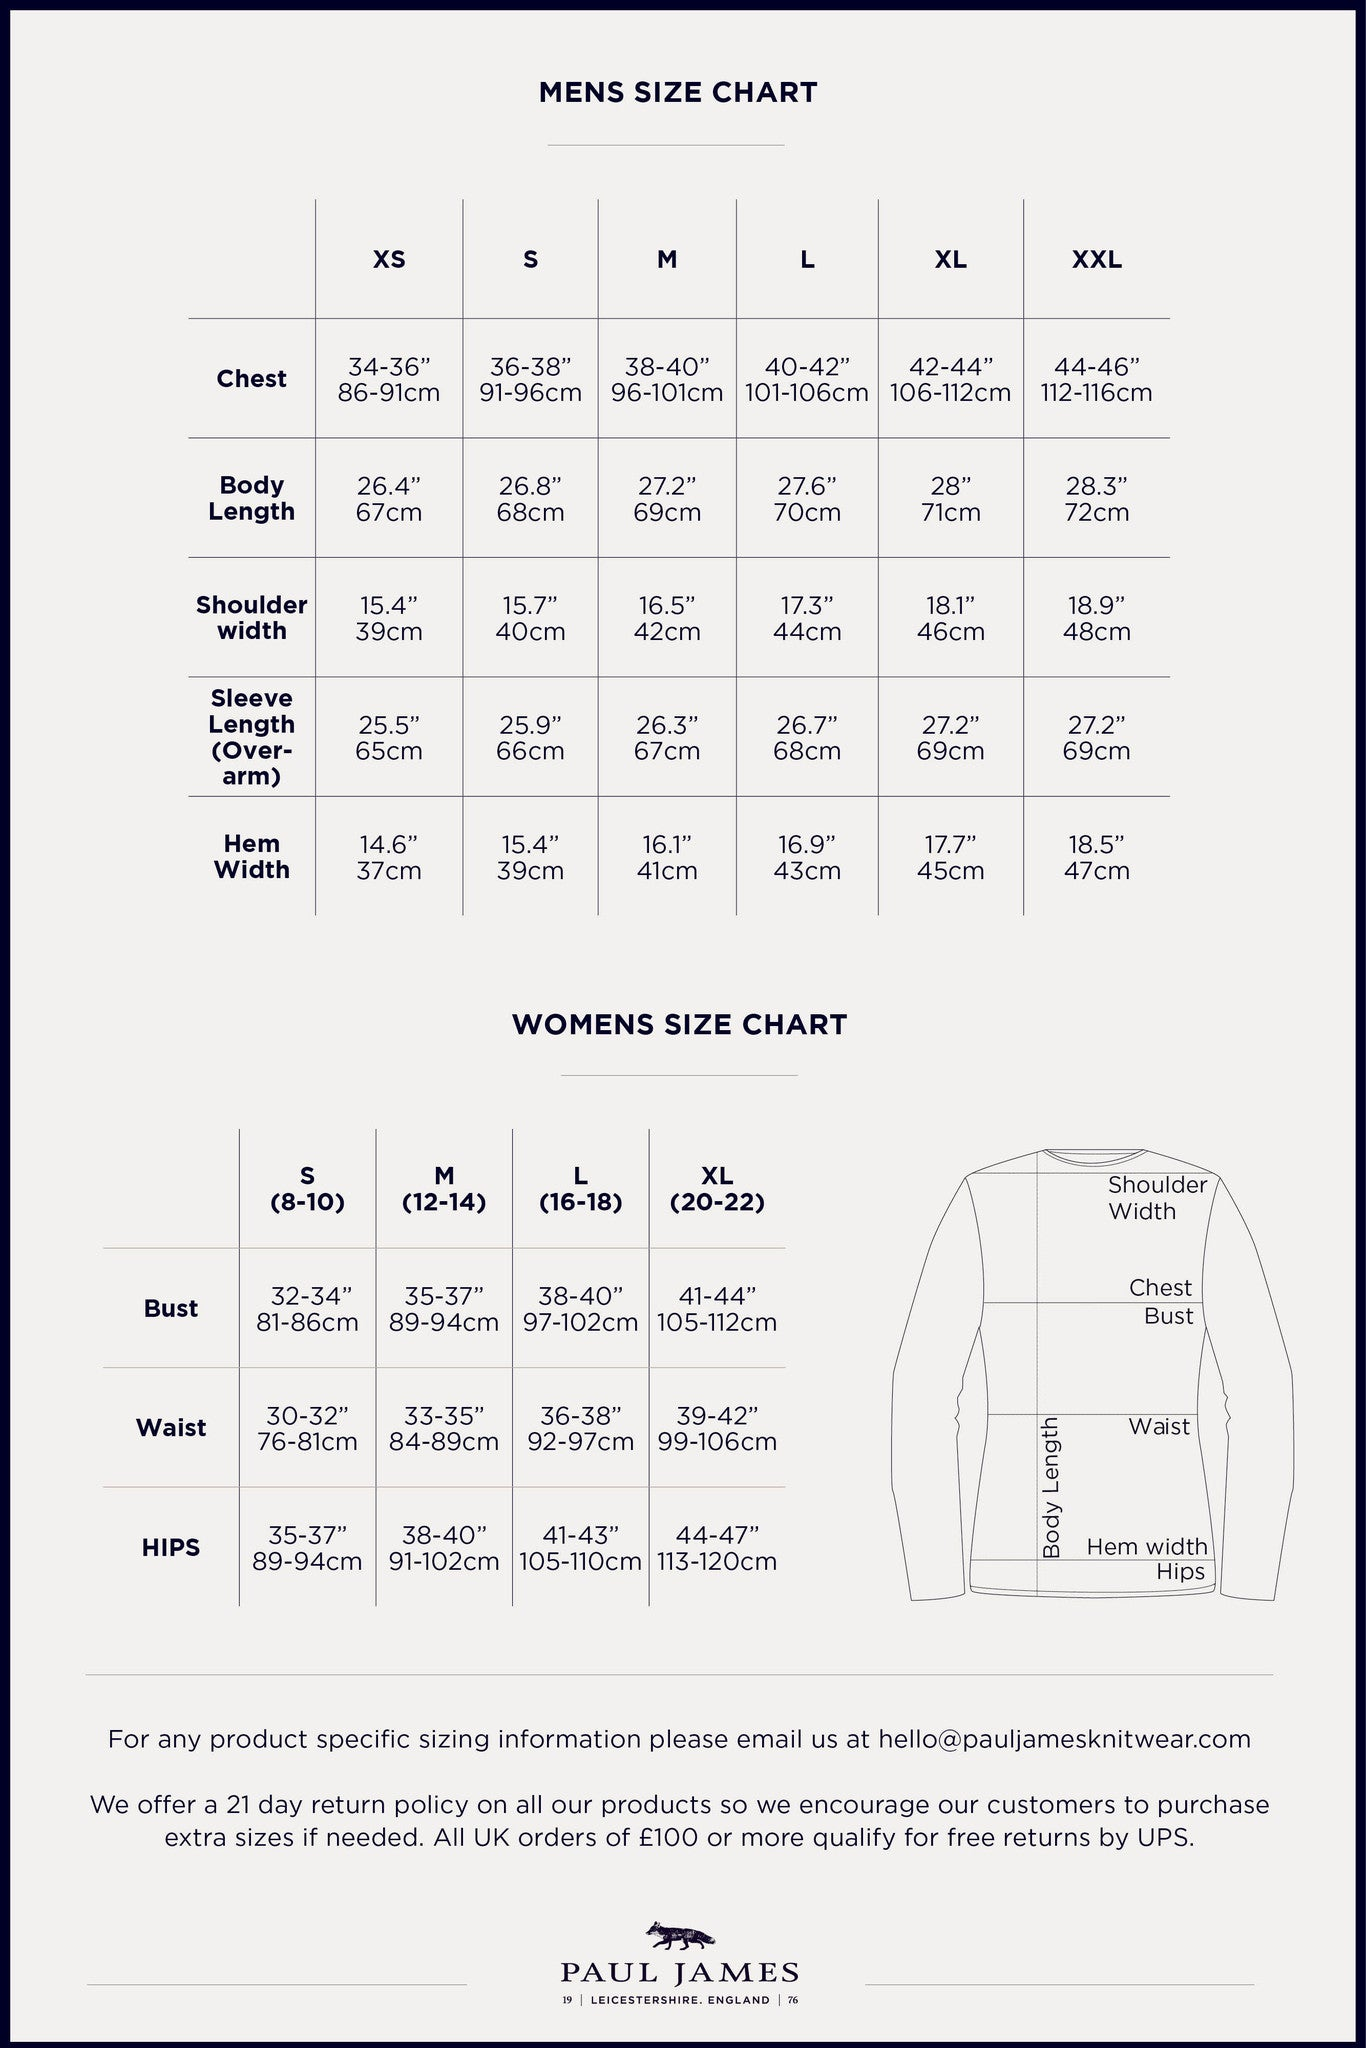 knitwear size chart Paul James